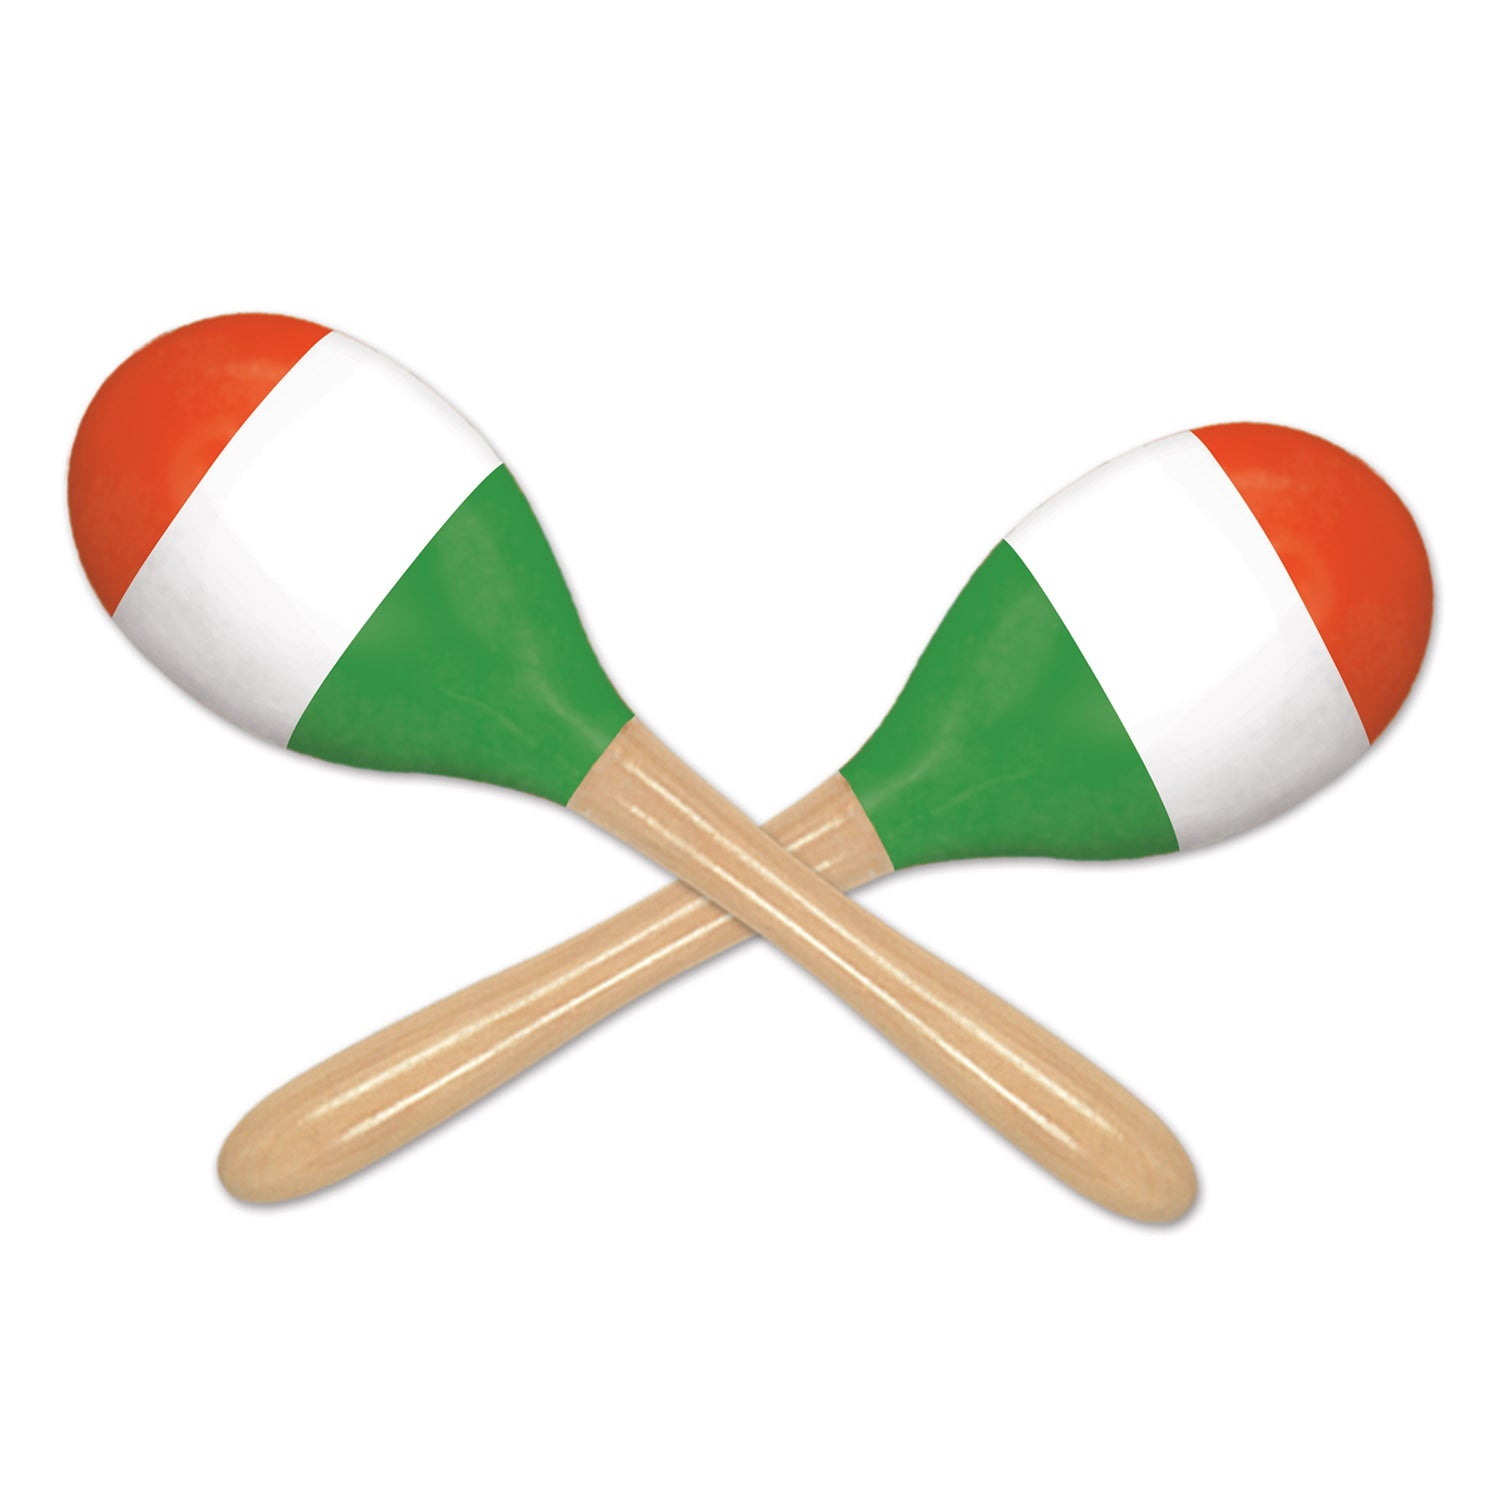 Red, White & Green Maracas (2/Pkg) by Beistle - Cinco de Mayo and Fiesta Party Supplies Decorations